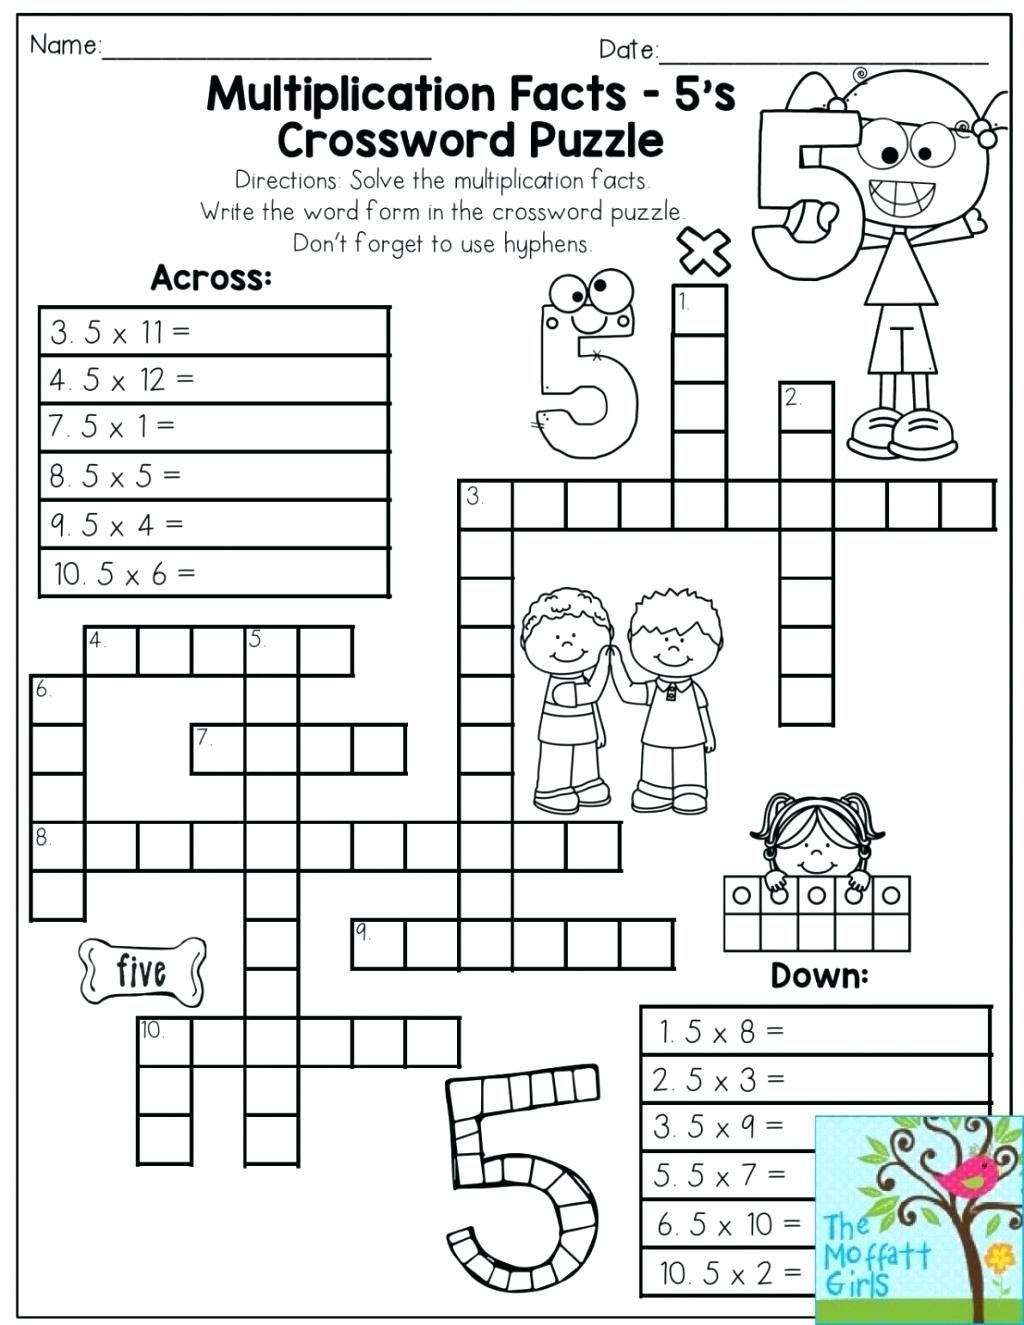 Math Worksheet Game Worksheets 7Th Grade Puzzle 6Th For Second Free - Printable Multiplication Puzzles